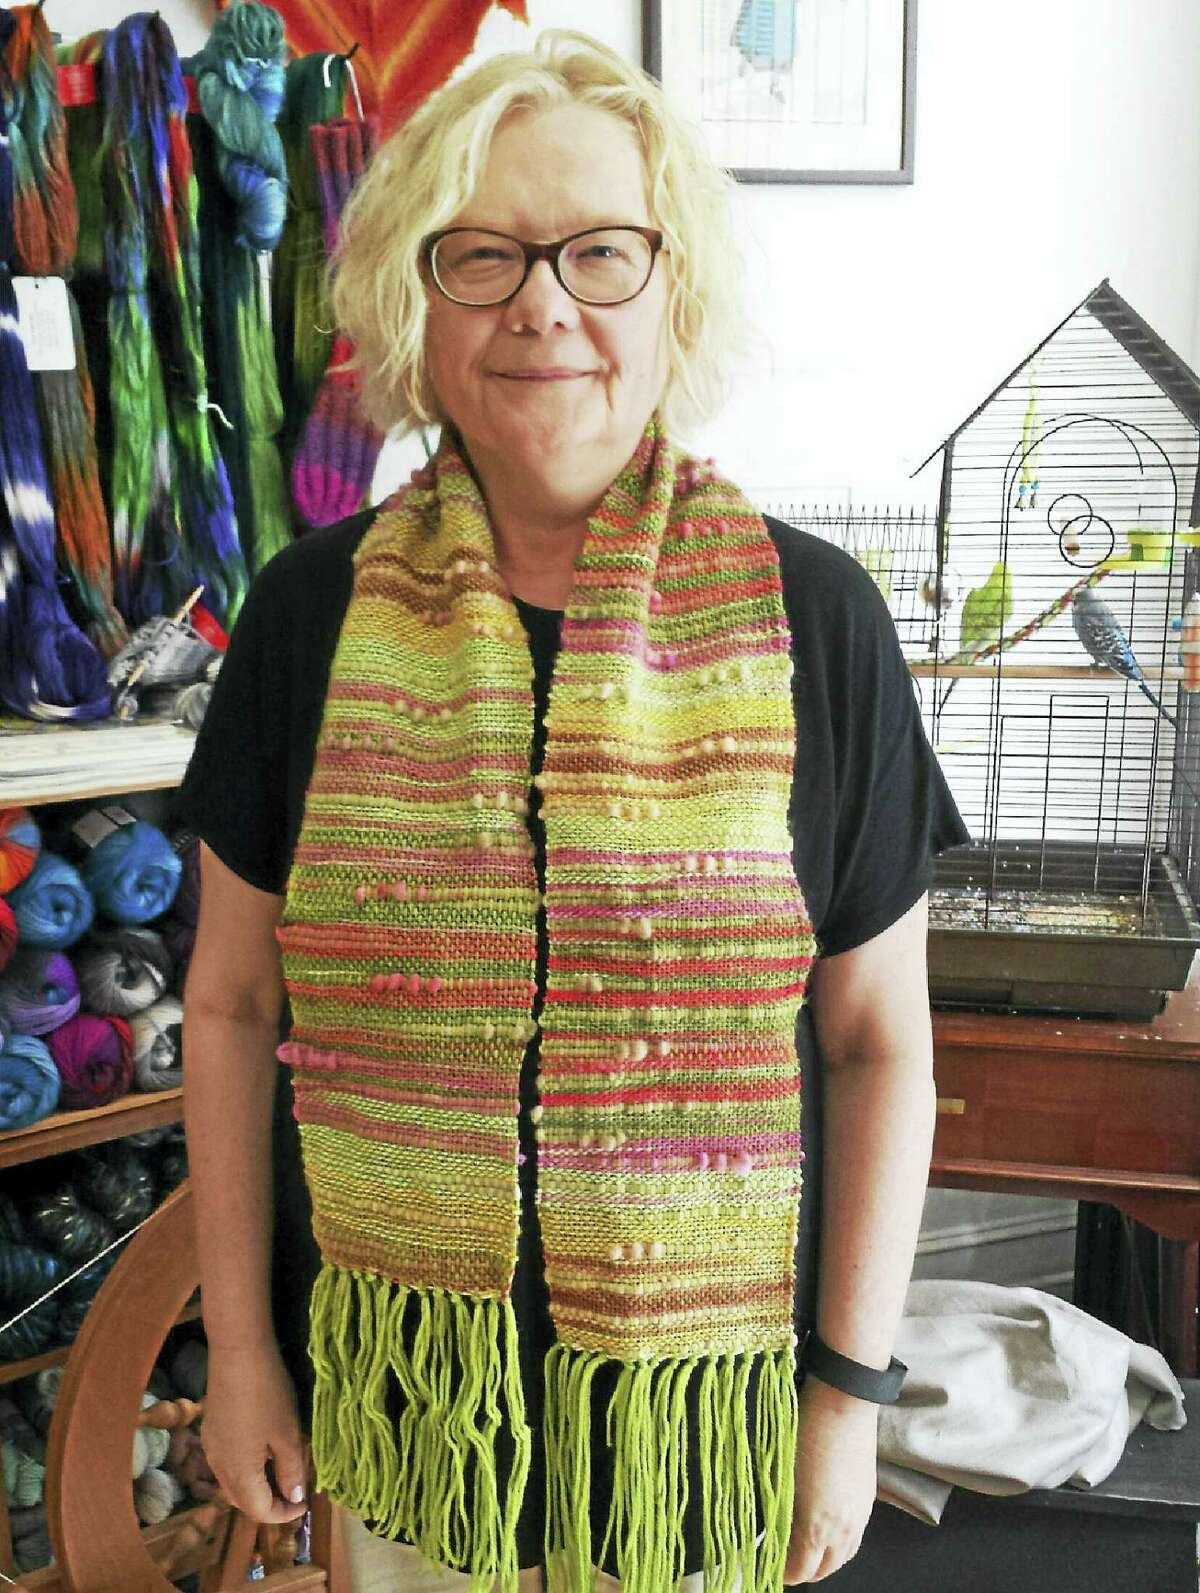 A student proudly shows her first woven scarf, hot off the loom.